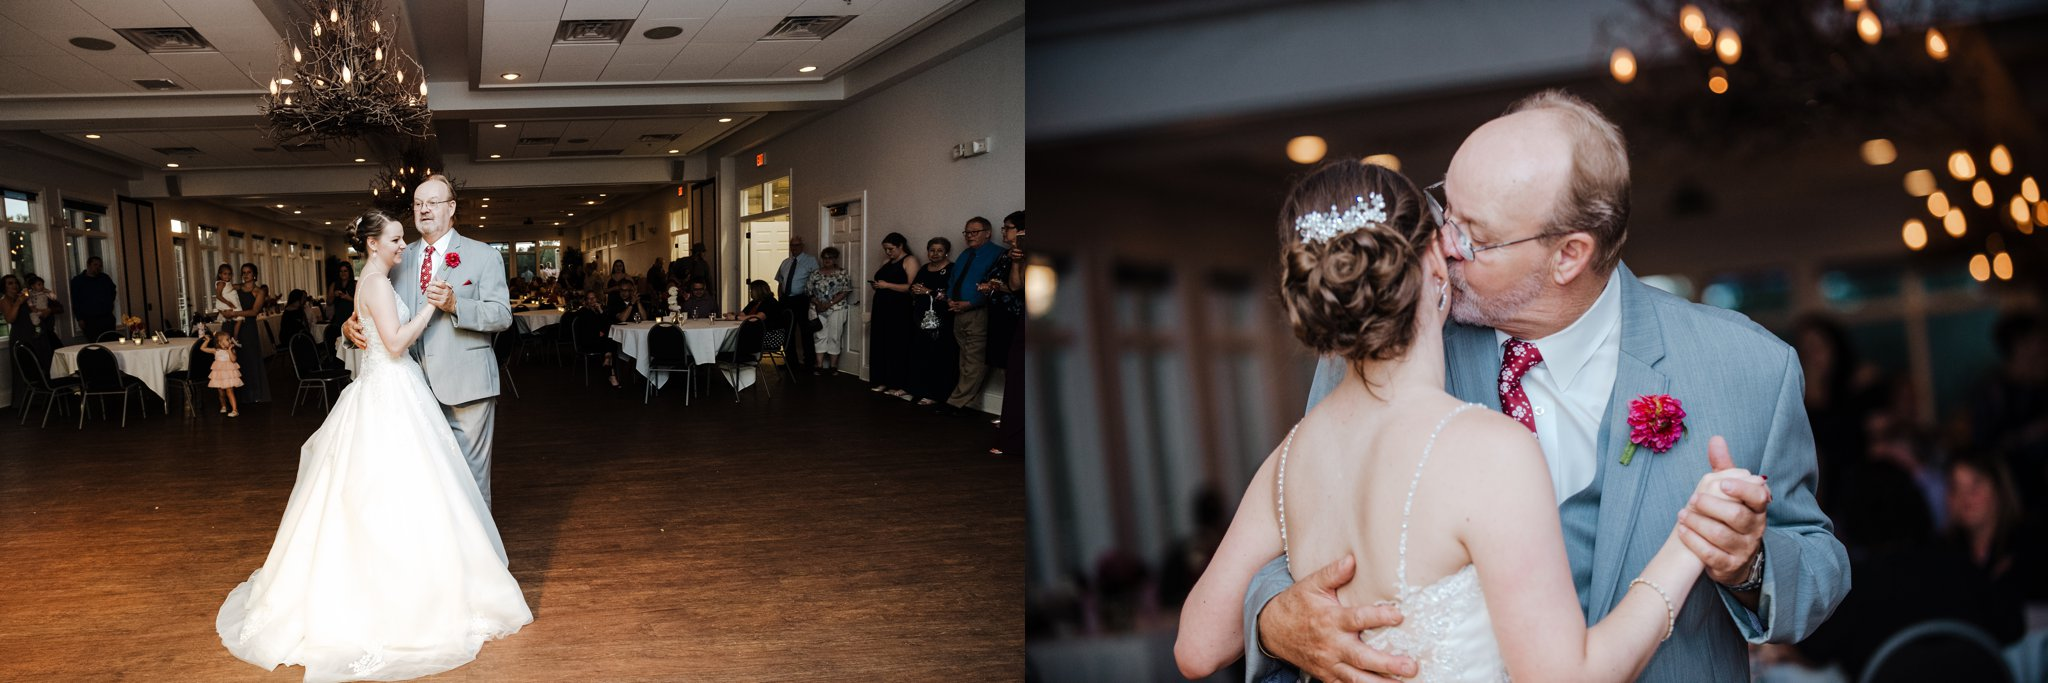 Wisconsin Wedding Photographer_6514.jpg